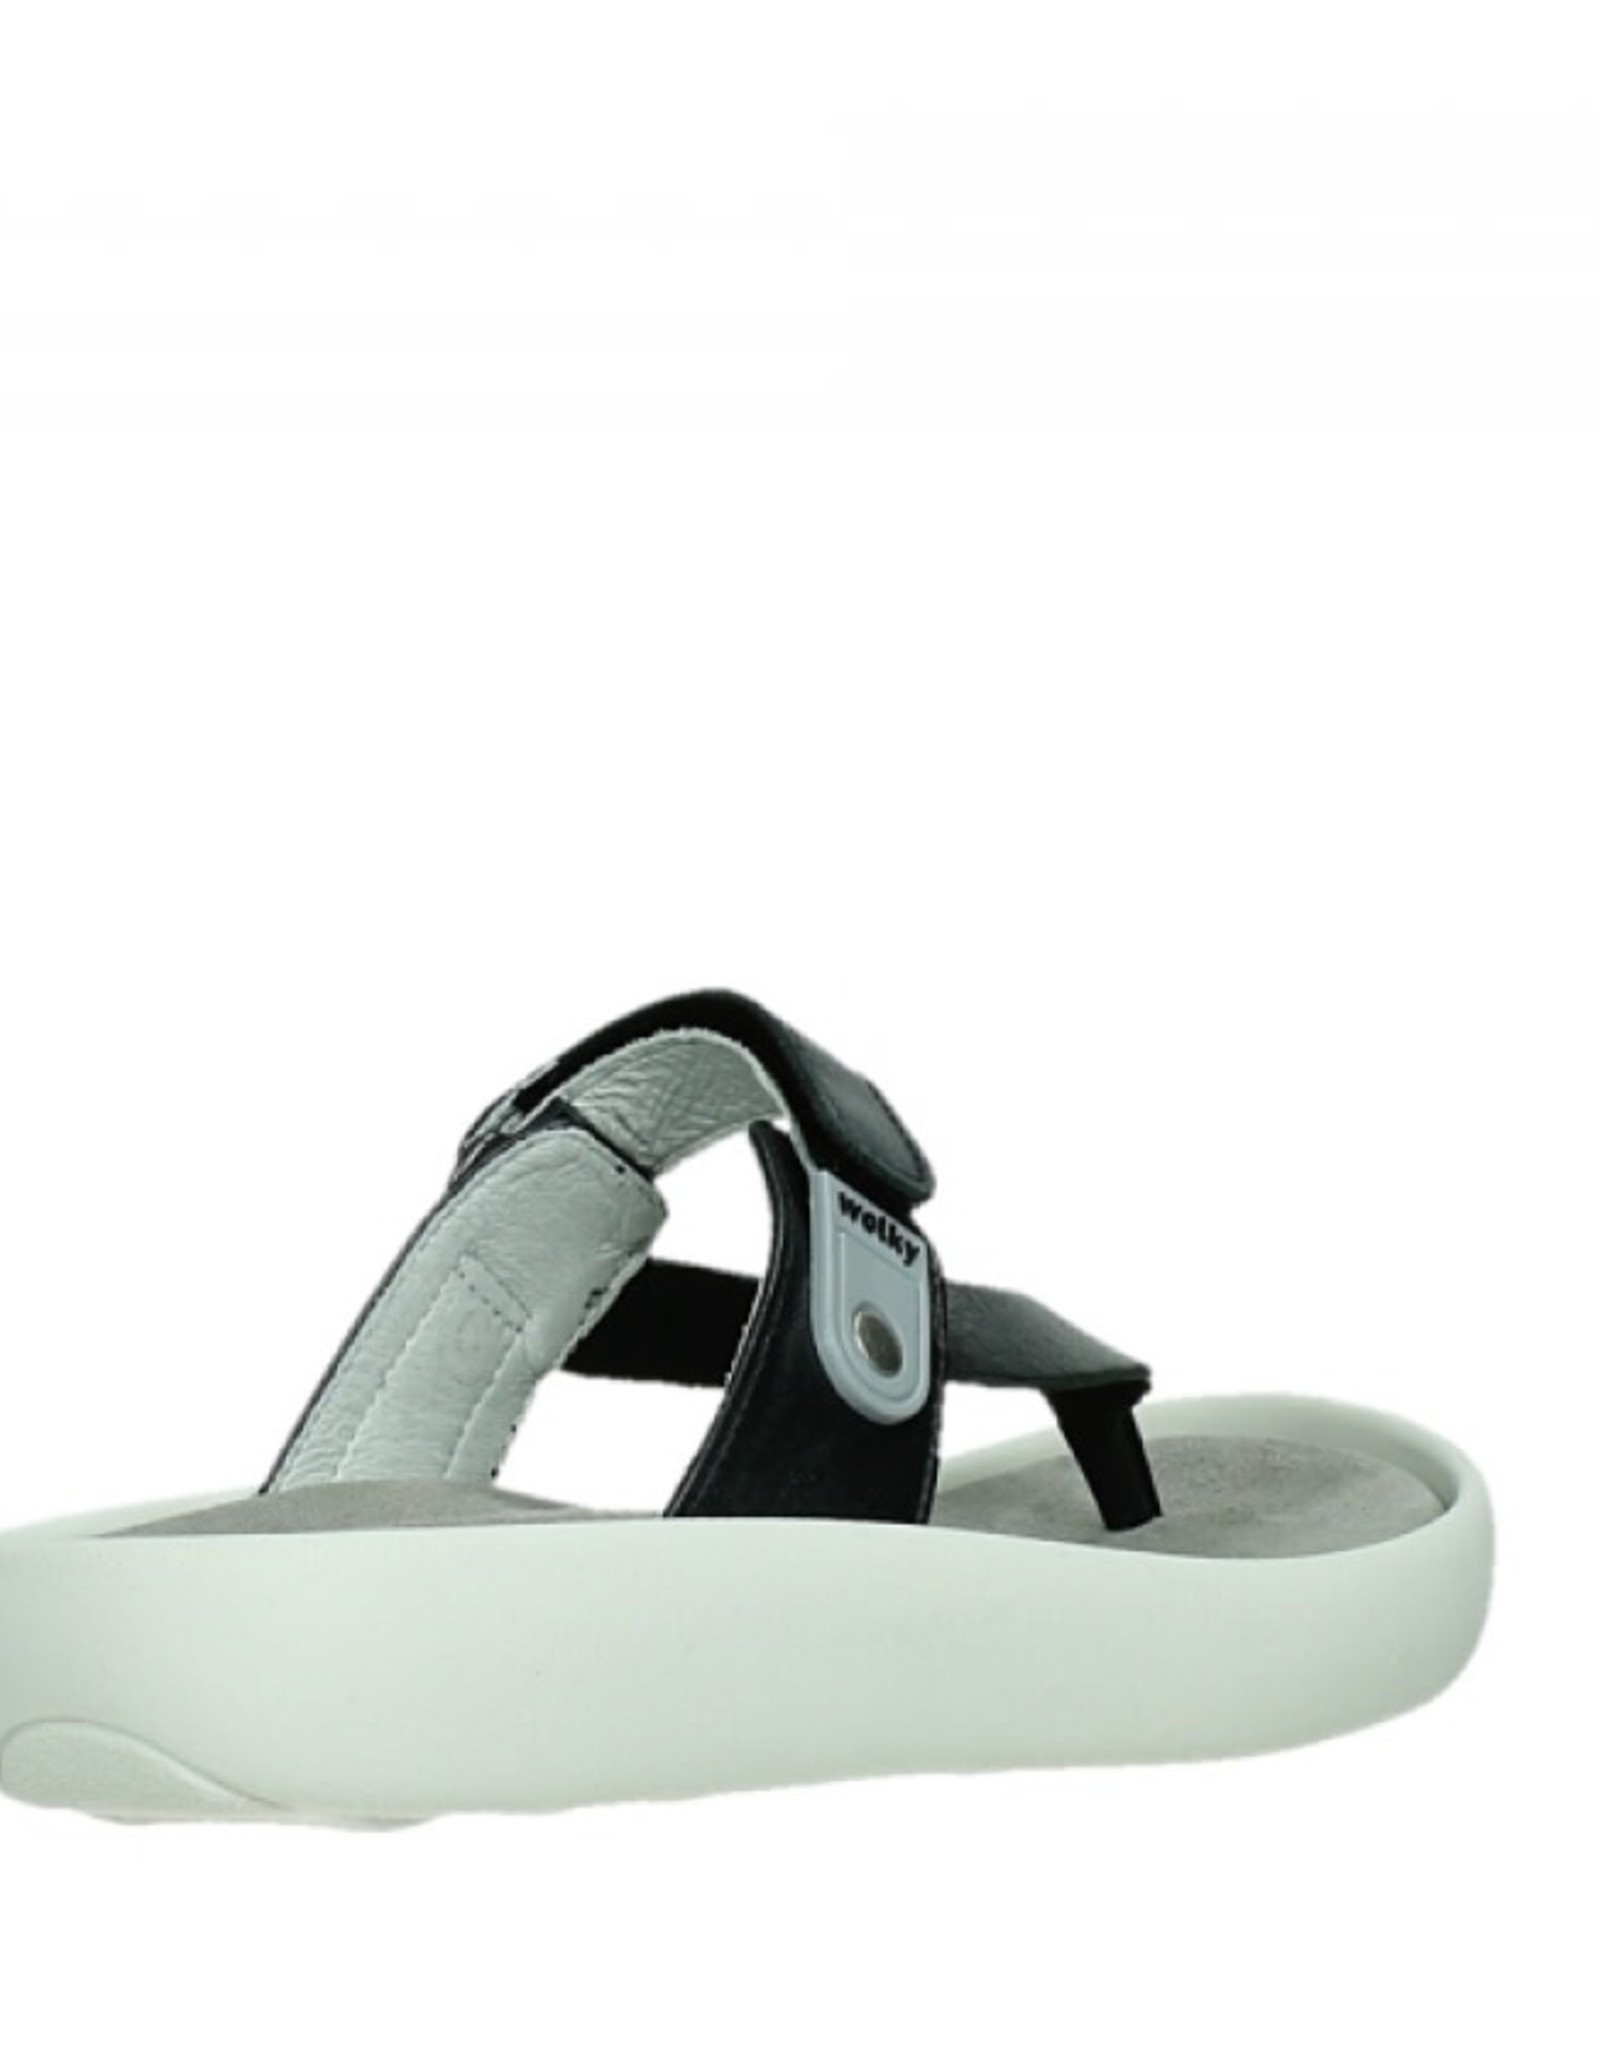 WOLKY Peace Sandal